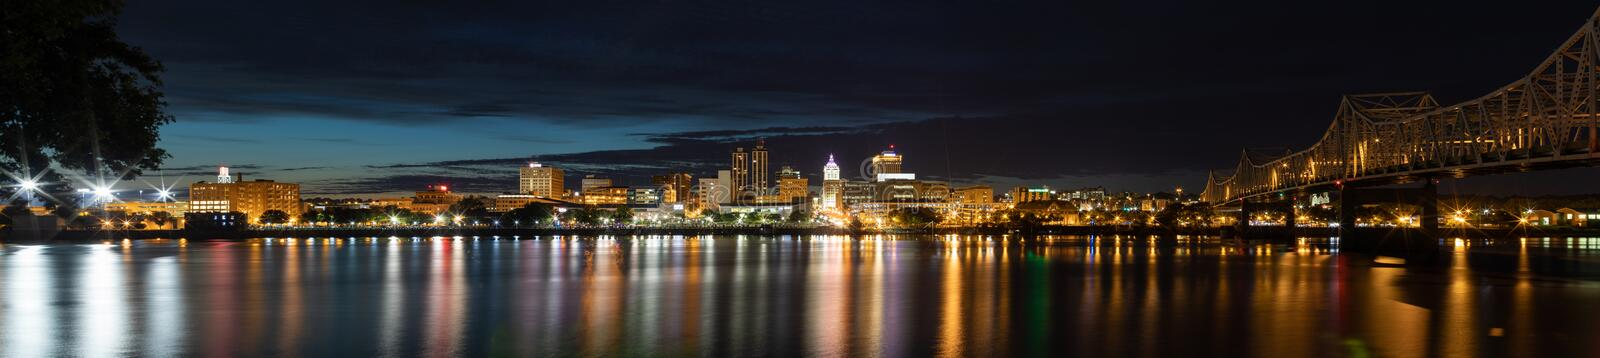 The City Of Peoria. Peoria, in the state of Illinois, United States of America, at night, across the Illinois River stock images